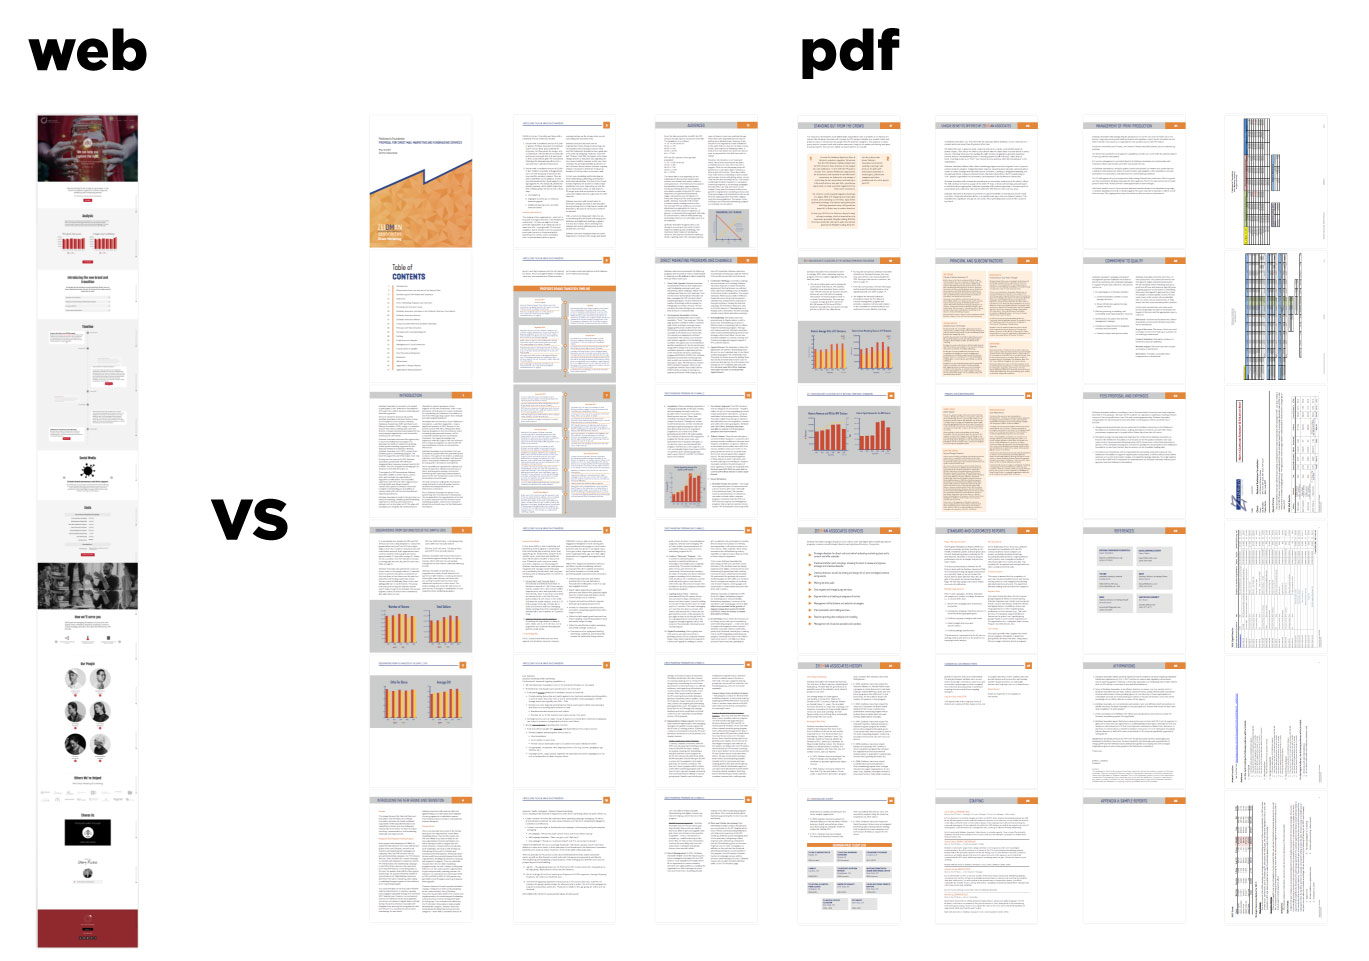 proposal-web-vs-pdf.jpg